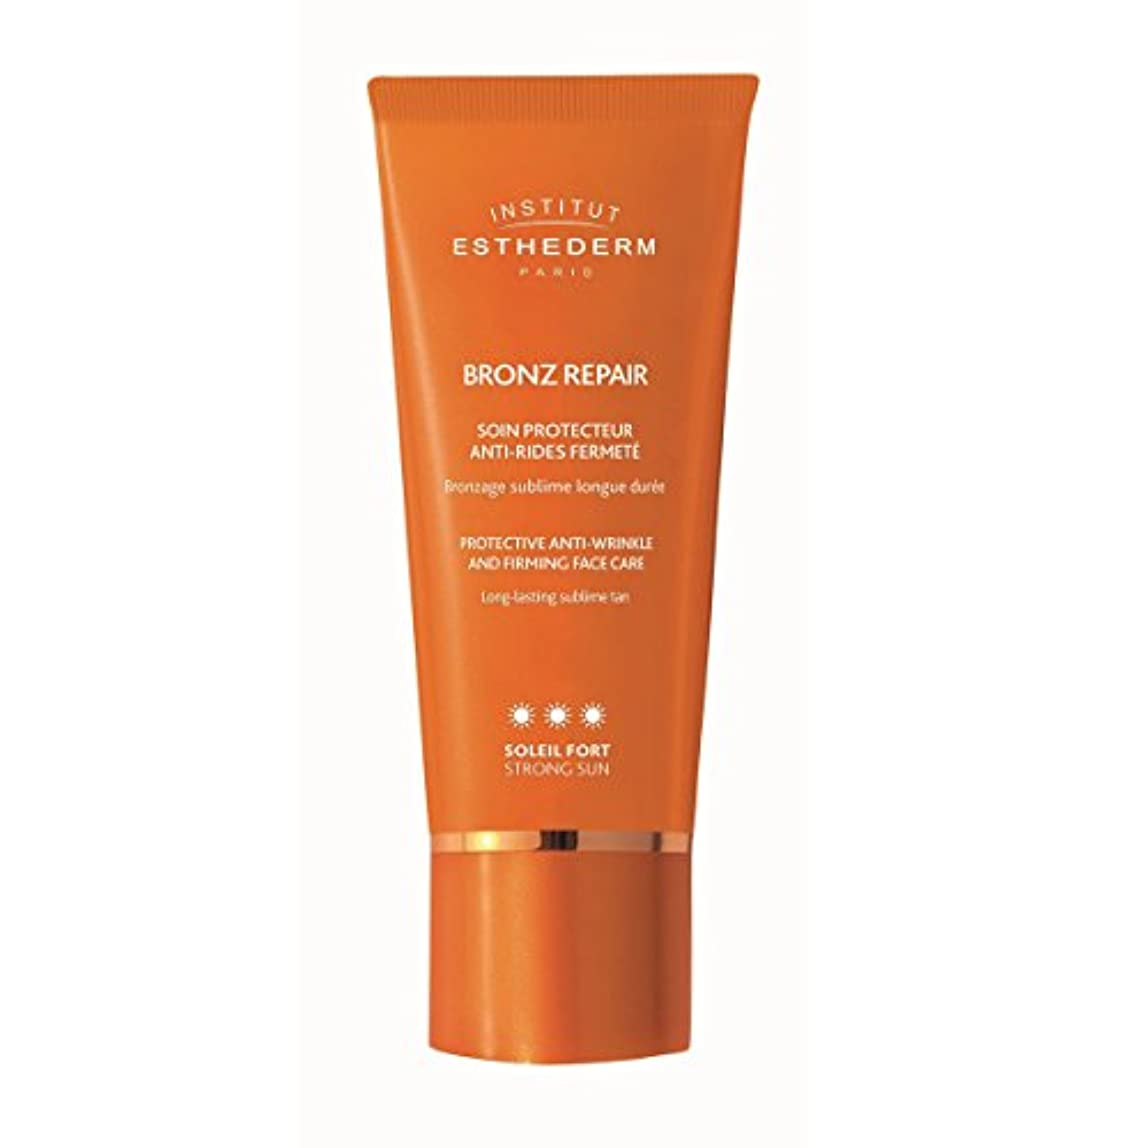 販売員と組む自転車Institut Esthederm Bronz Repair Protective Anti-wrinkle And Firming Face Care Strong Sun 50ml [並行輸入品]